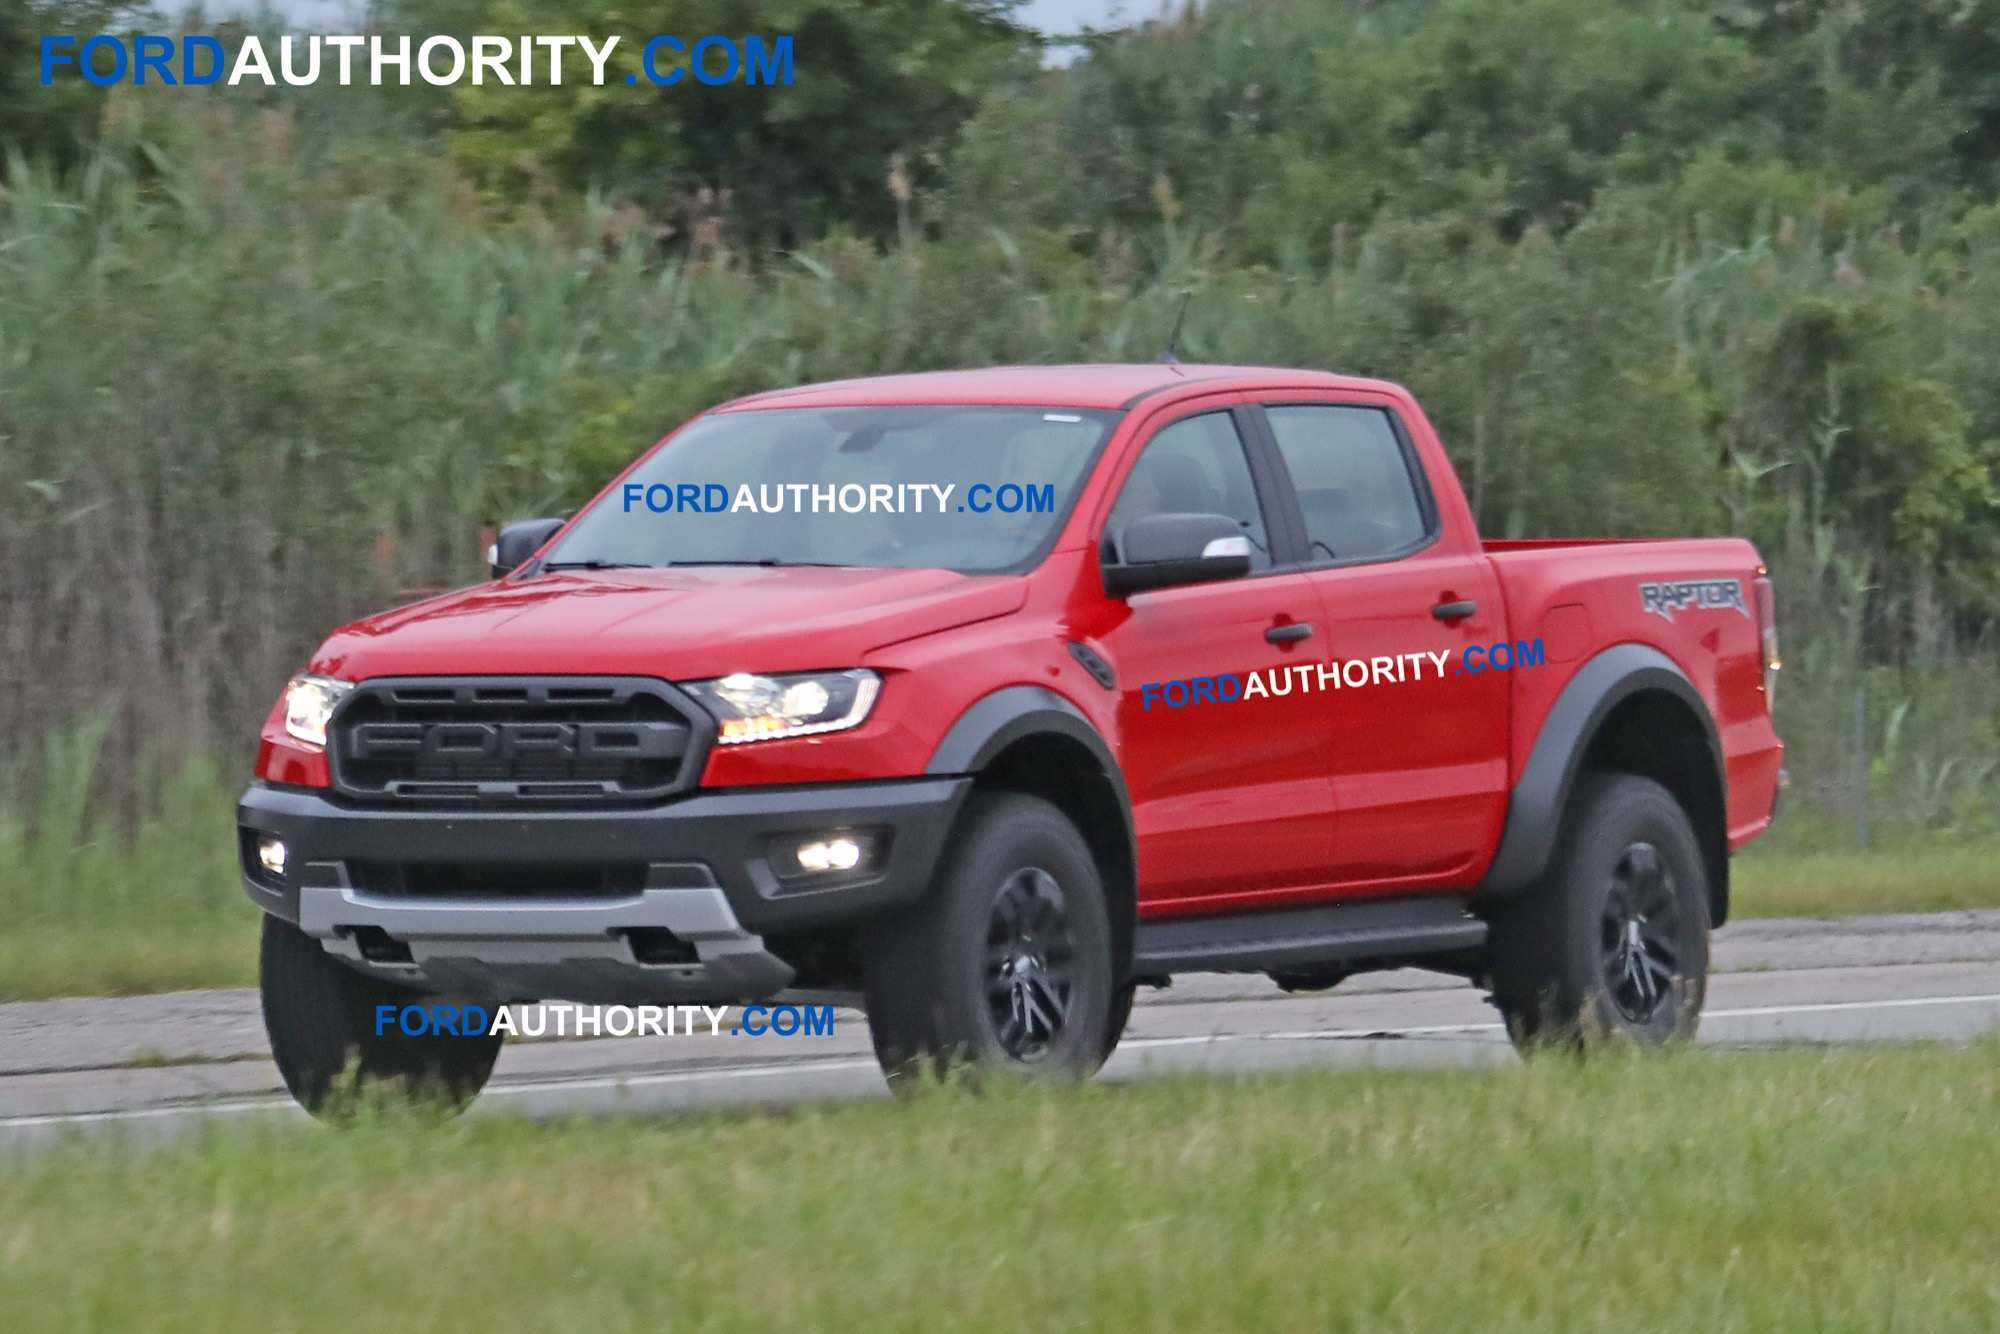 93 Best Review 2019 Ford Ranger Engine Options Configurations by 2019 Ford Ranger Engine Options